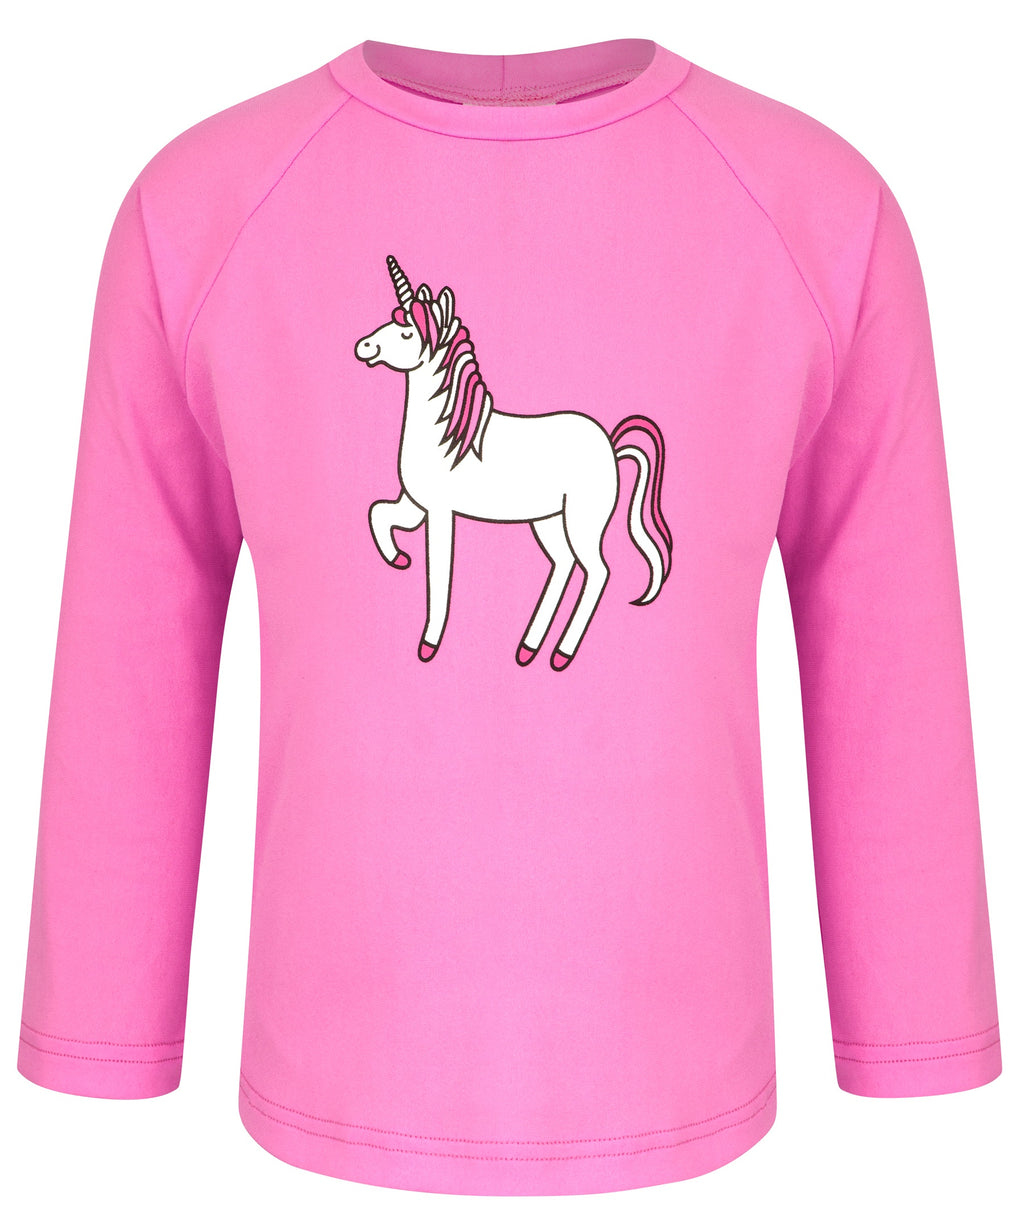 Unicorn Long Sleeve Sun Top